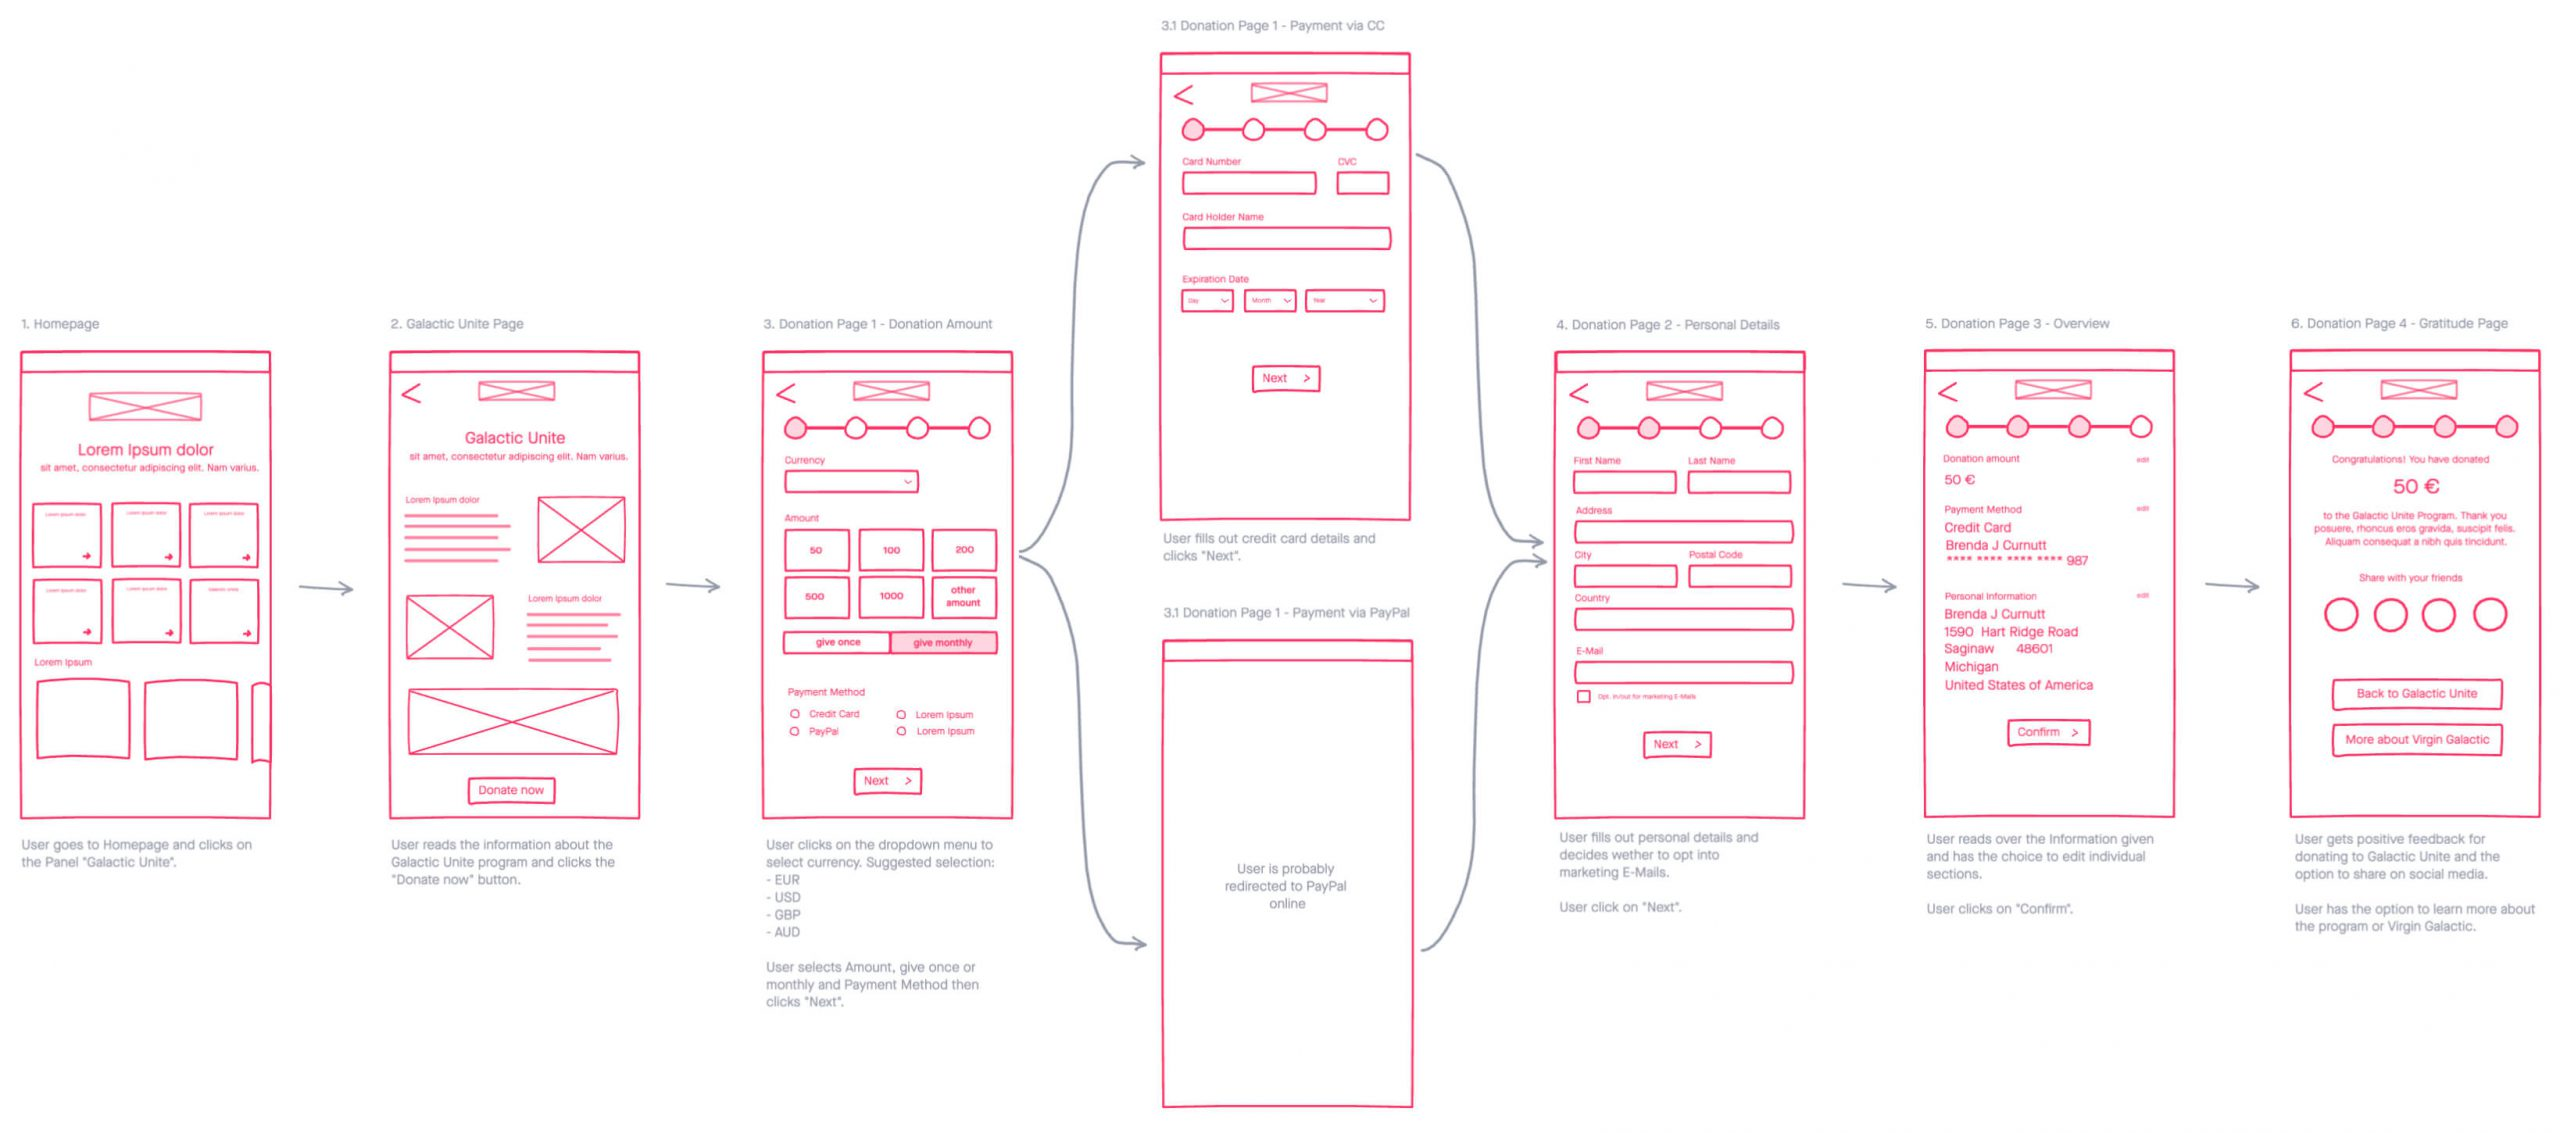 Wireframe for the virgin galactic app concept